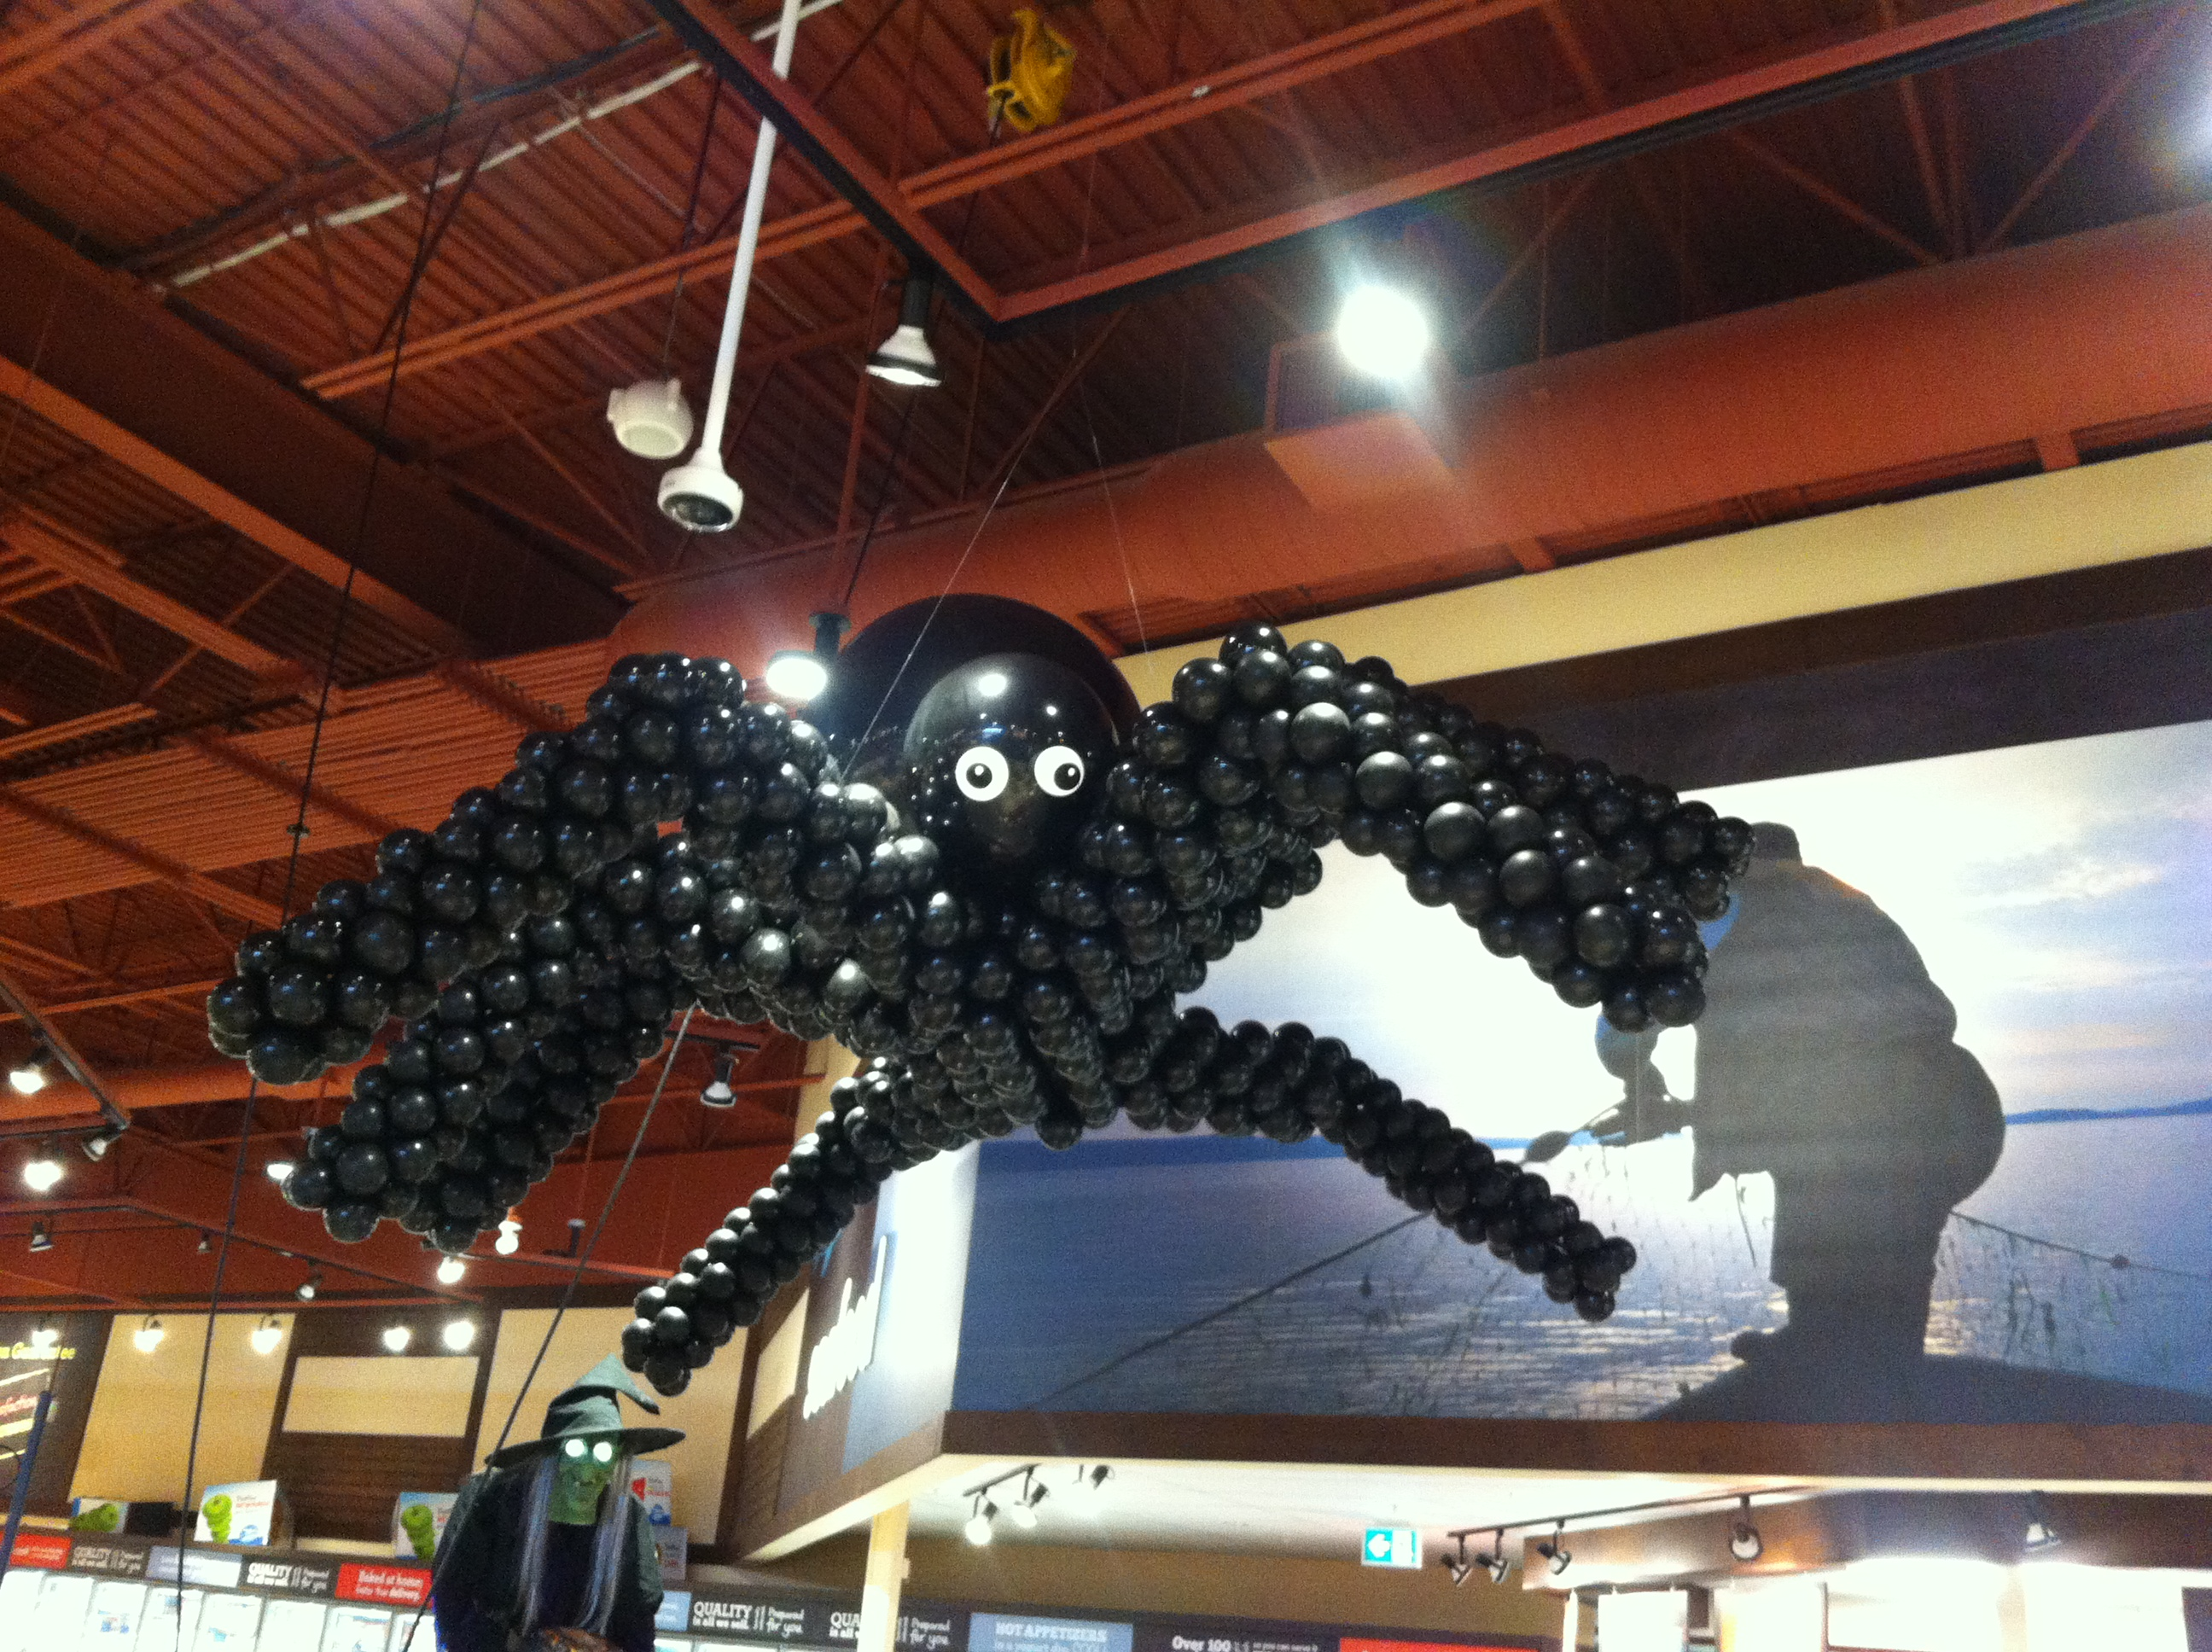 HUGE Spider Balloon Sculpture